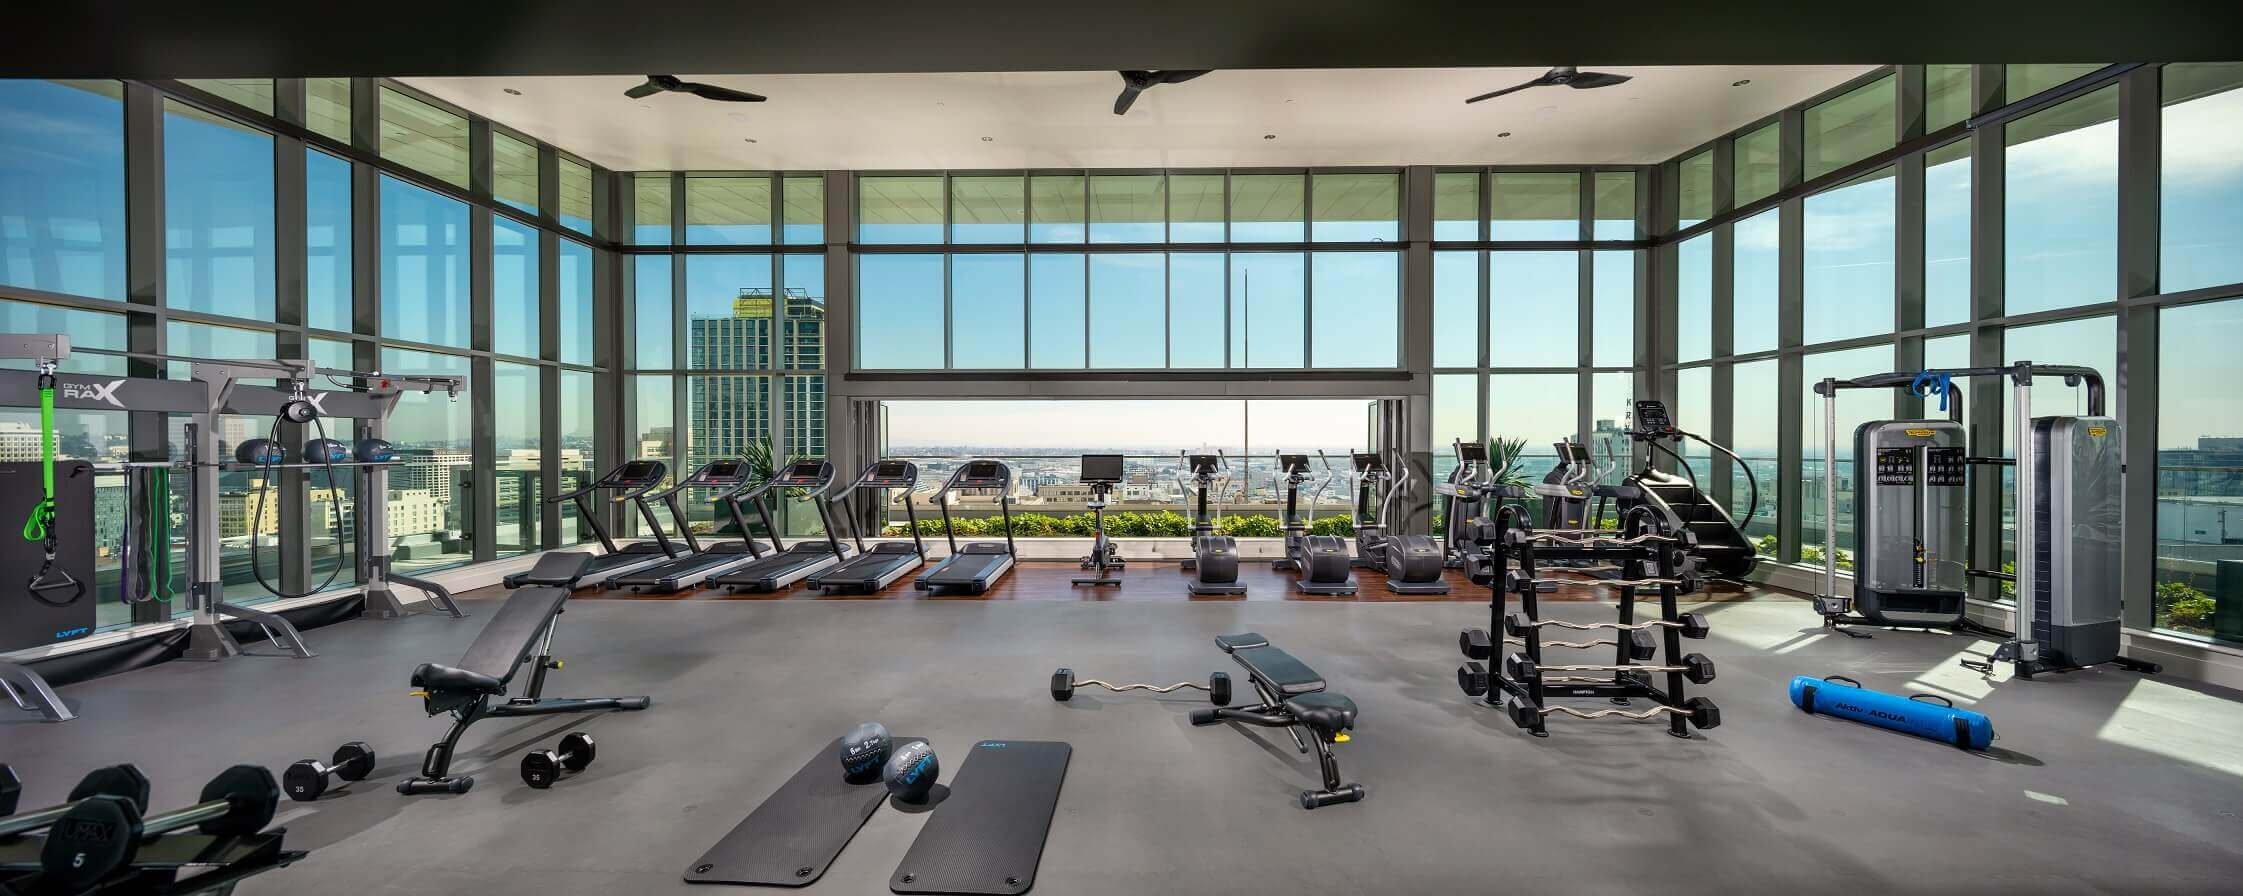 DTLA Luxury Apartments - Park Fifth Tower Expansive Fitness Center with Floor-to-Ceiling Windows and Updated Cardio and Weight Training Equipment